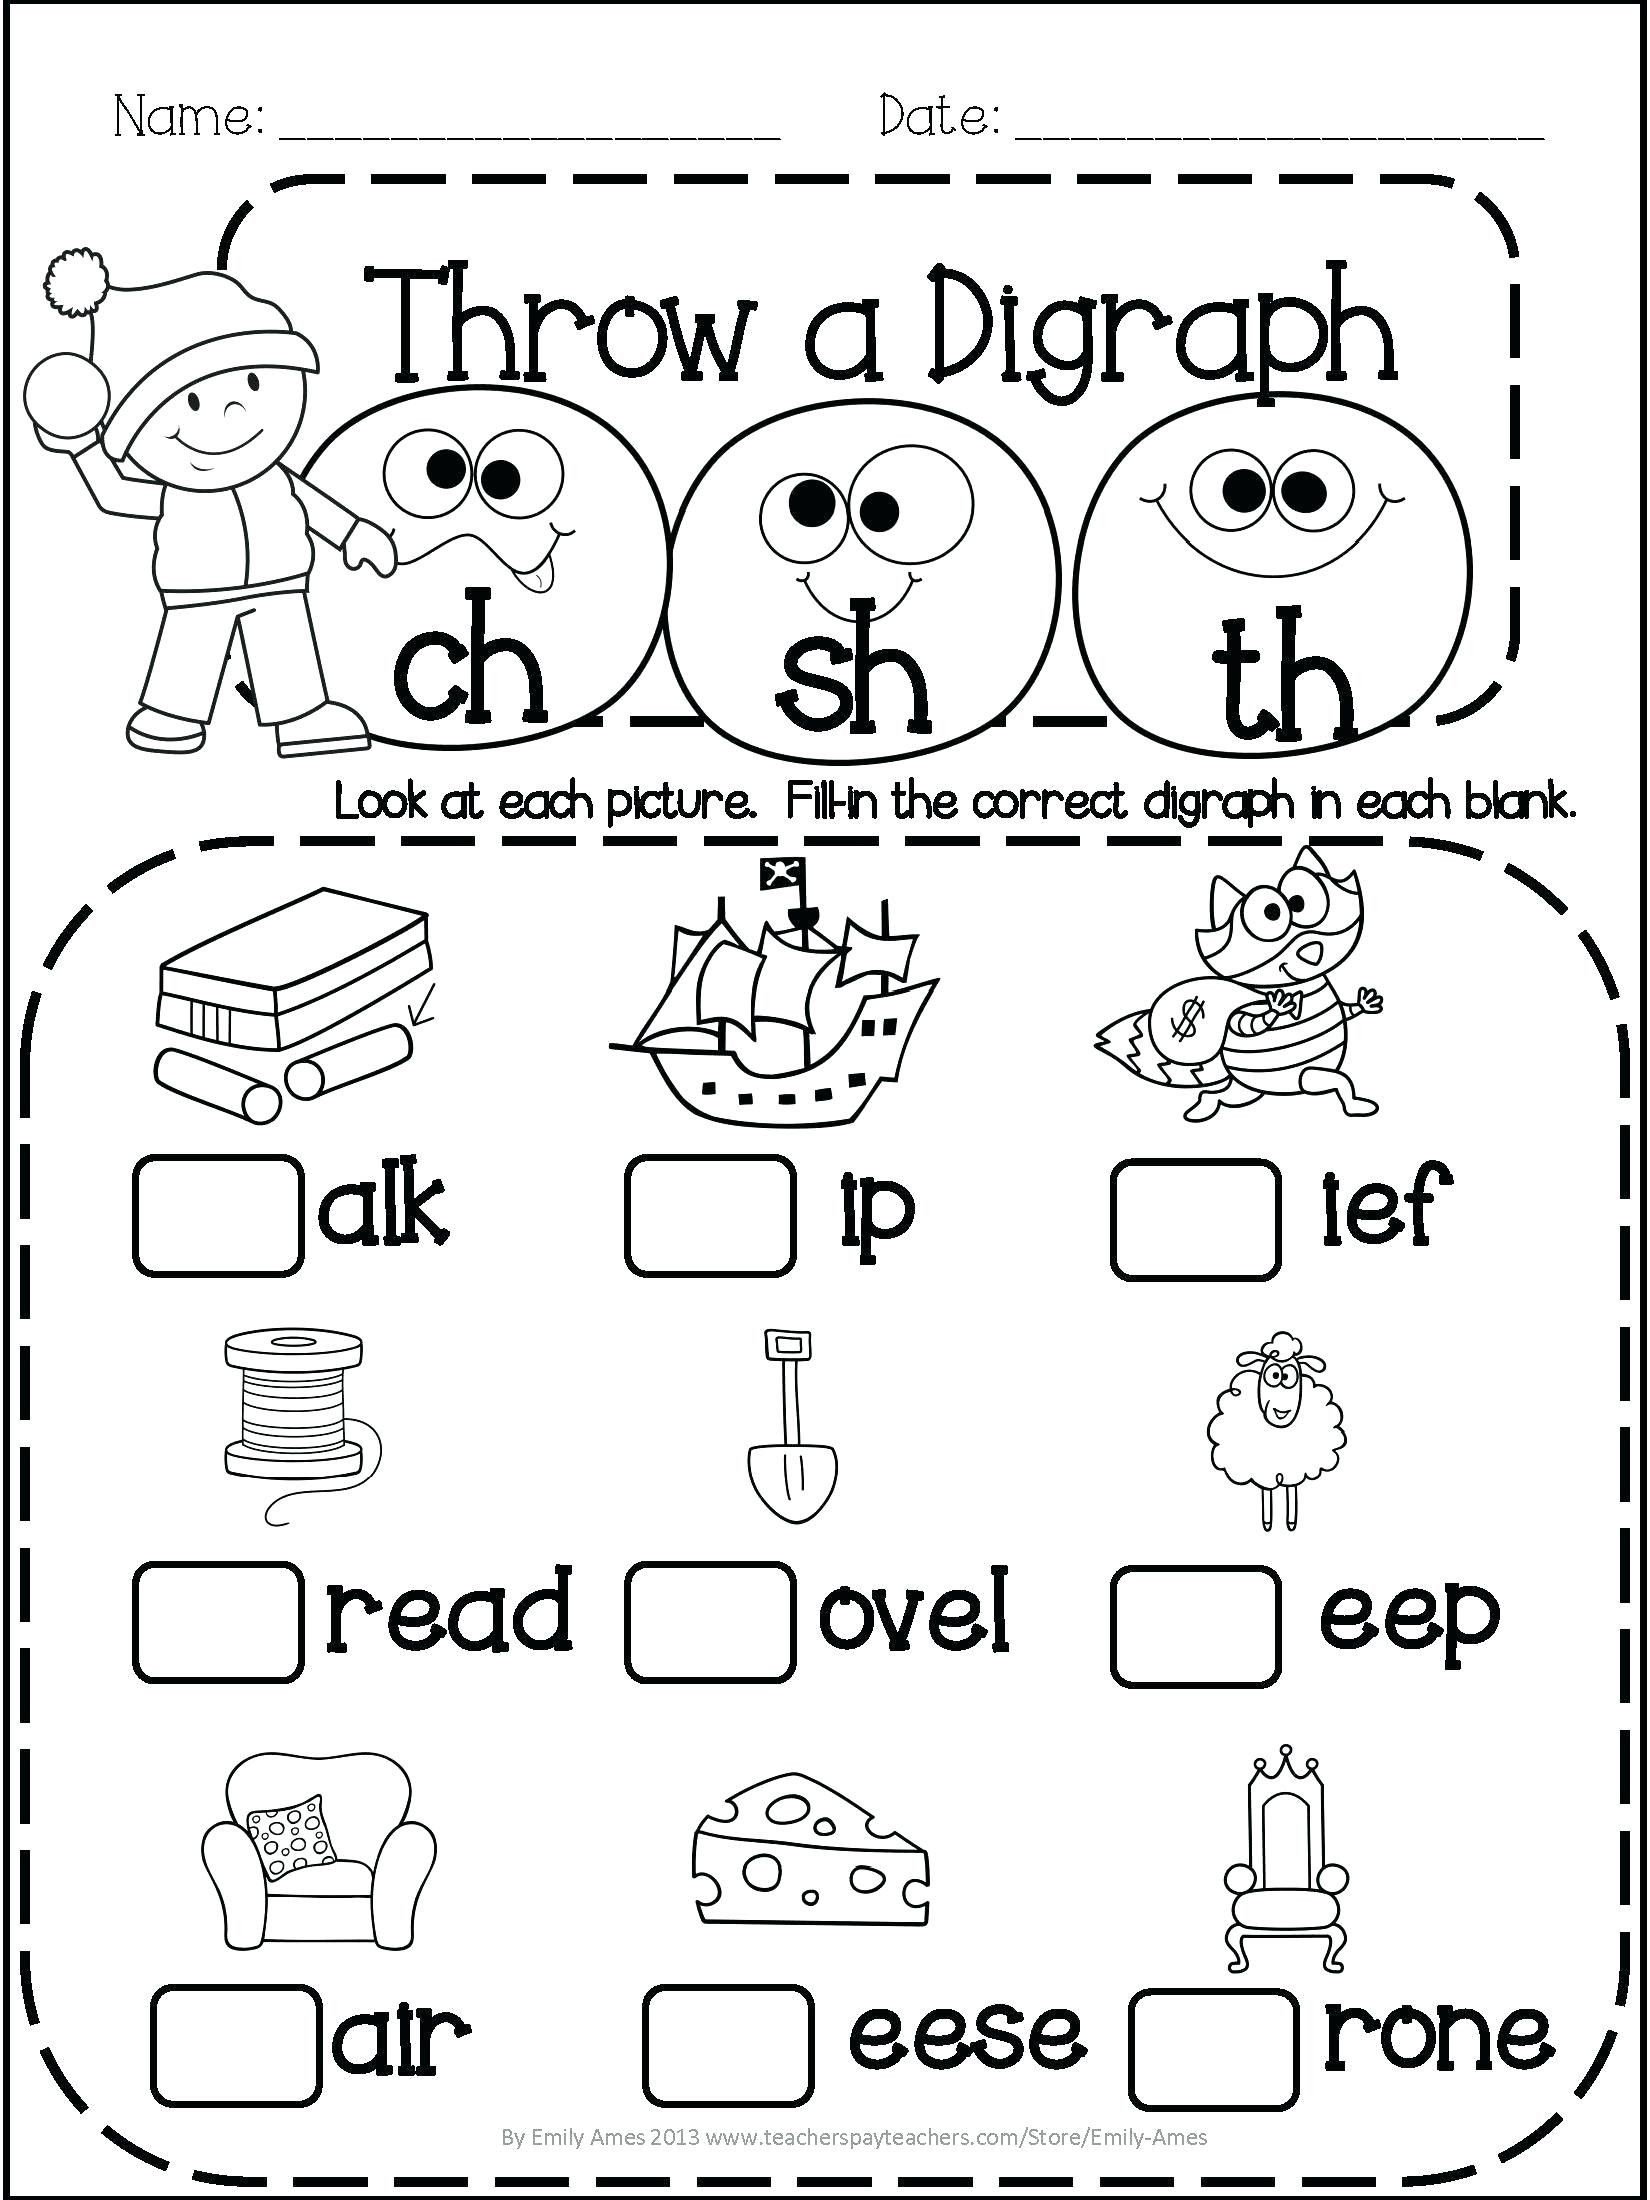 4 Free Math Worksheets Third Grade 3 Addition Word Problems My First Of Kindergarten Print Kindergarten Phonics Worksheets Blends Worksheets Phonics Worksheets